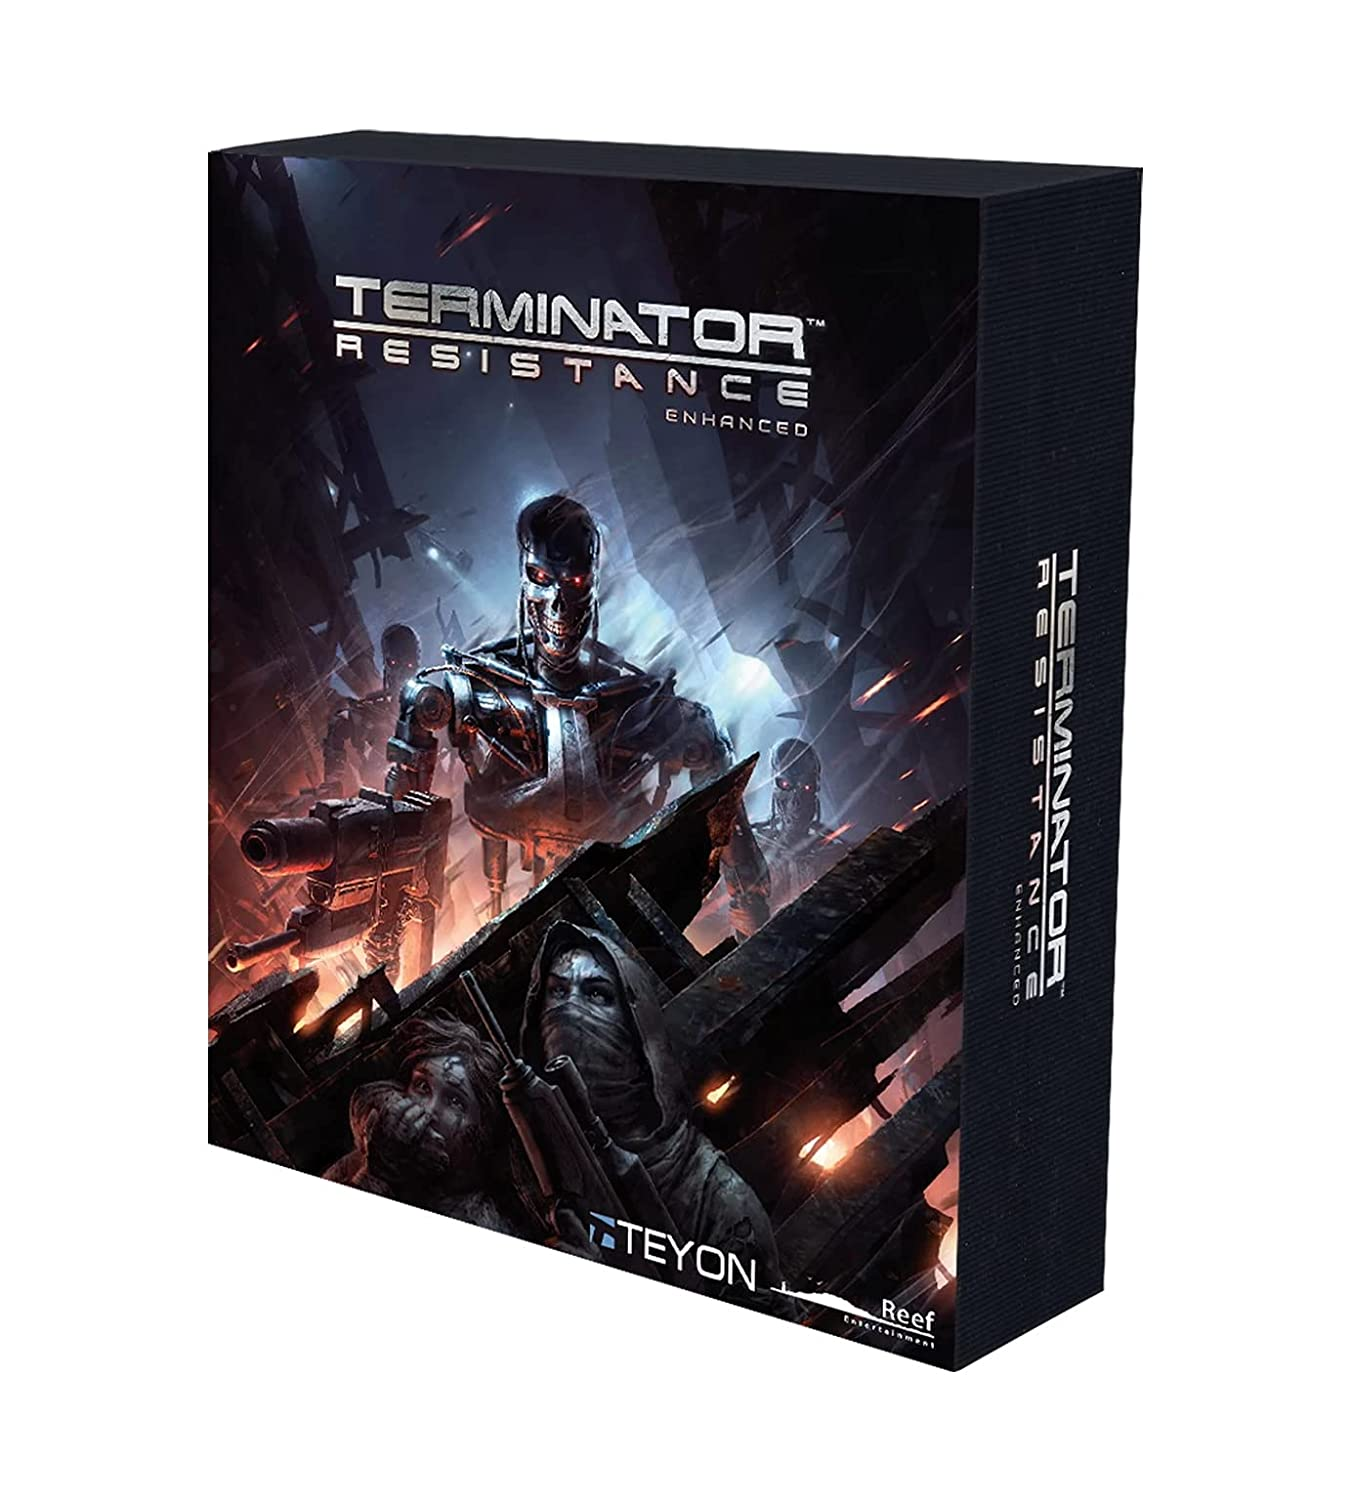 Terminator: NEW Max 59% OFF before selling Resistance Enhanced - PlayStat Edition Collector's